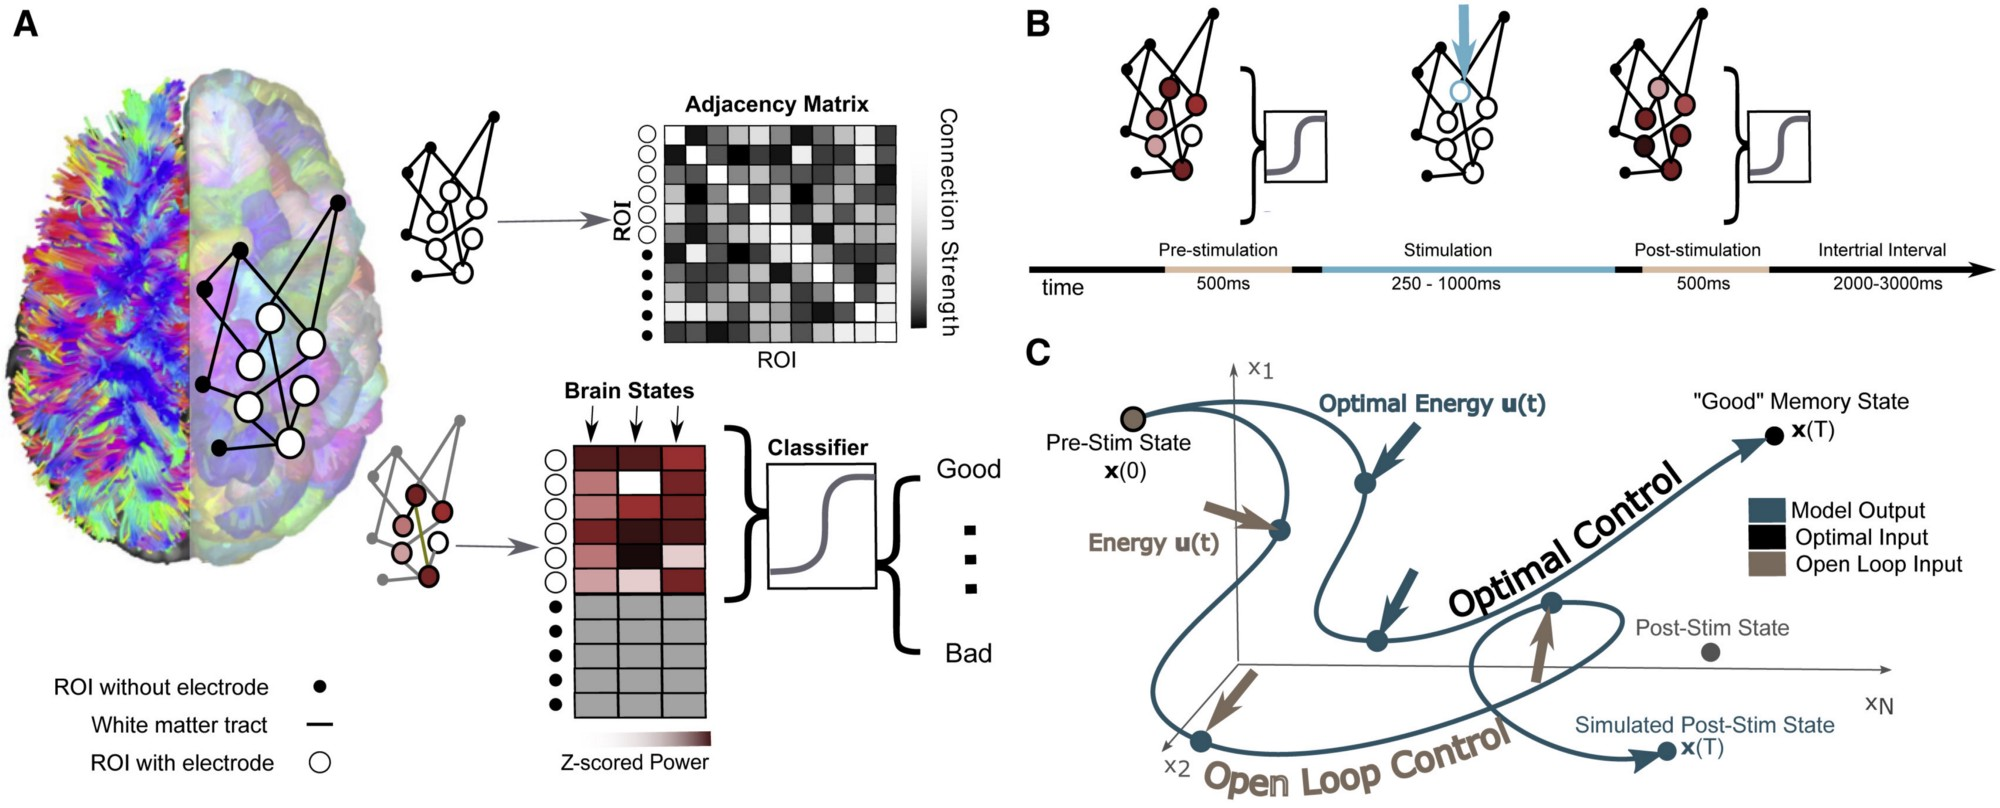 A complicated diagram from the researcher's paper that shows how electrical stimulation effects networks of brain regions.